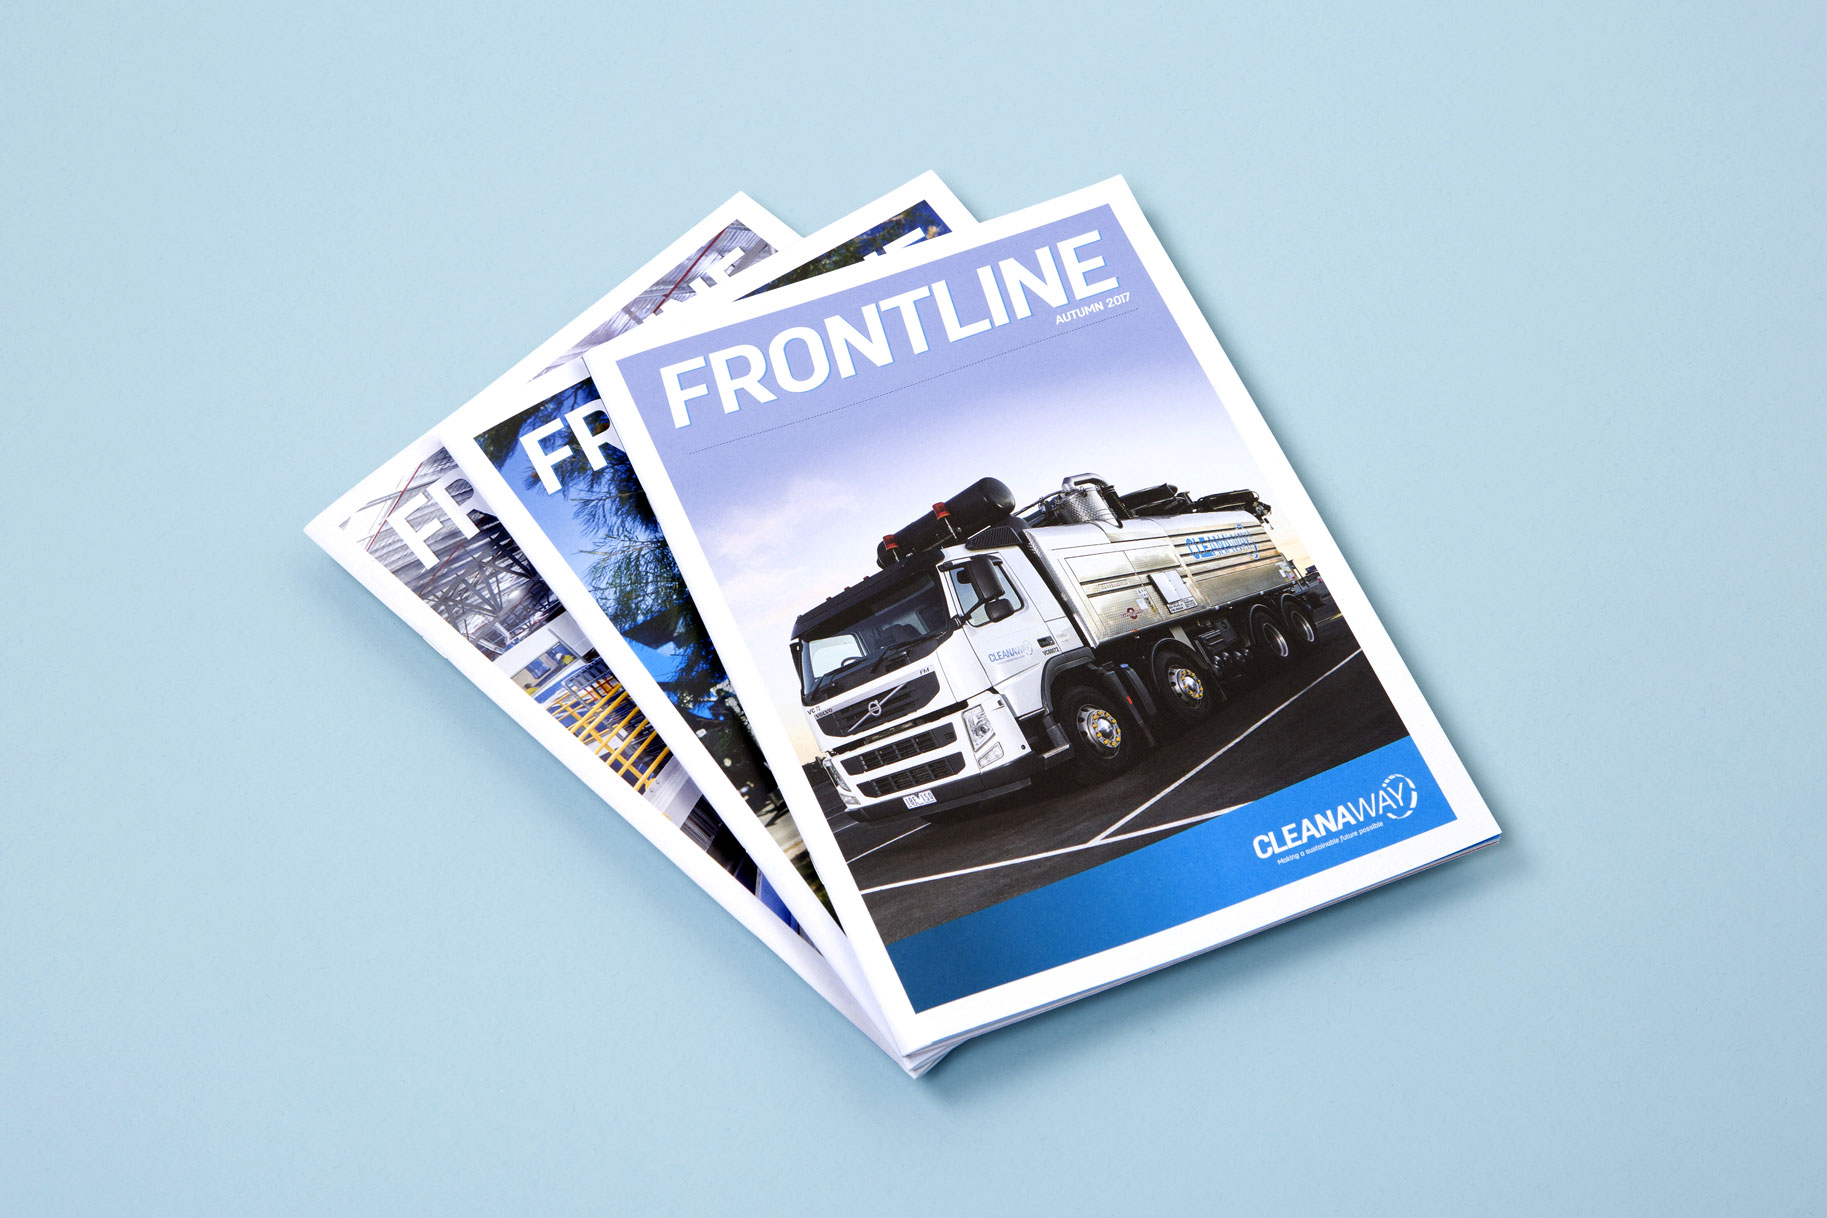 Frontline Magazine Covers